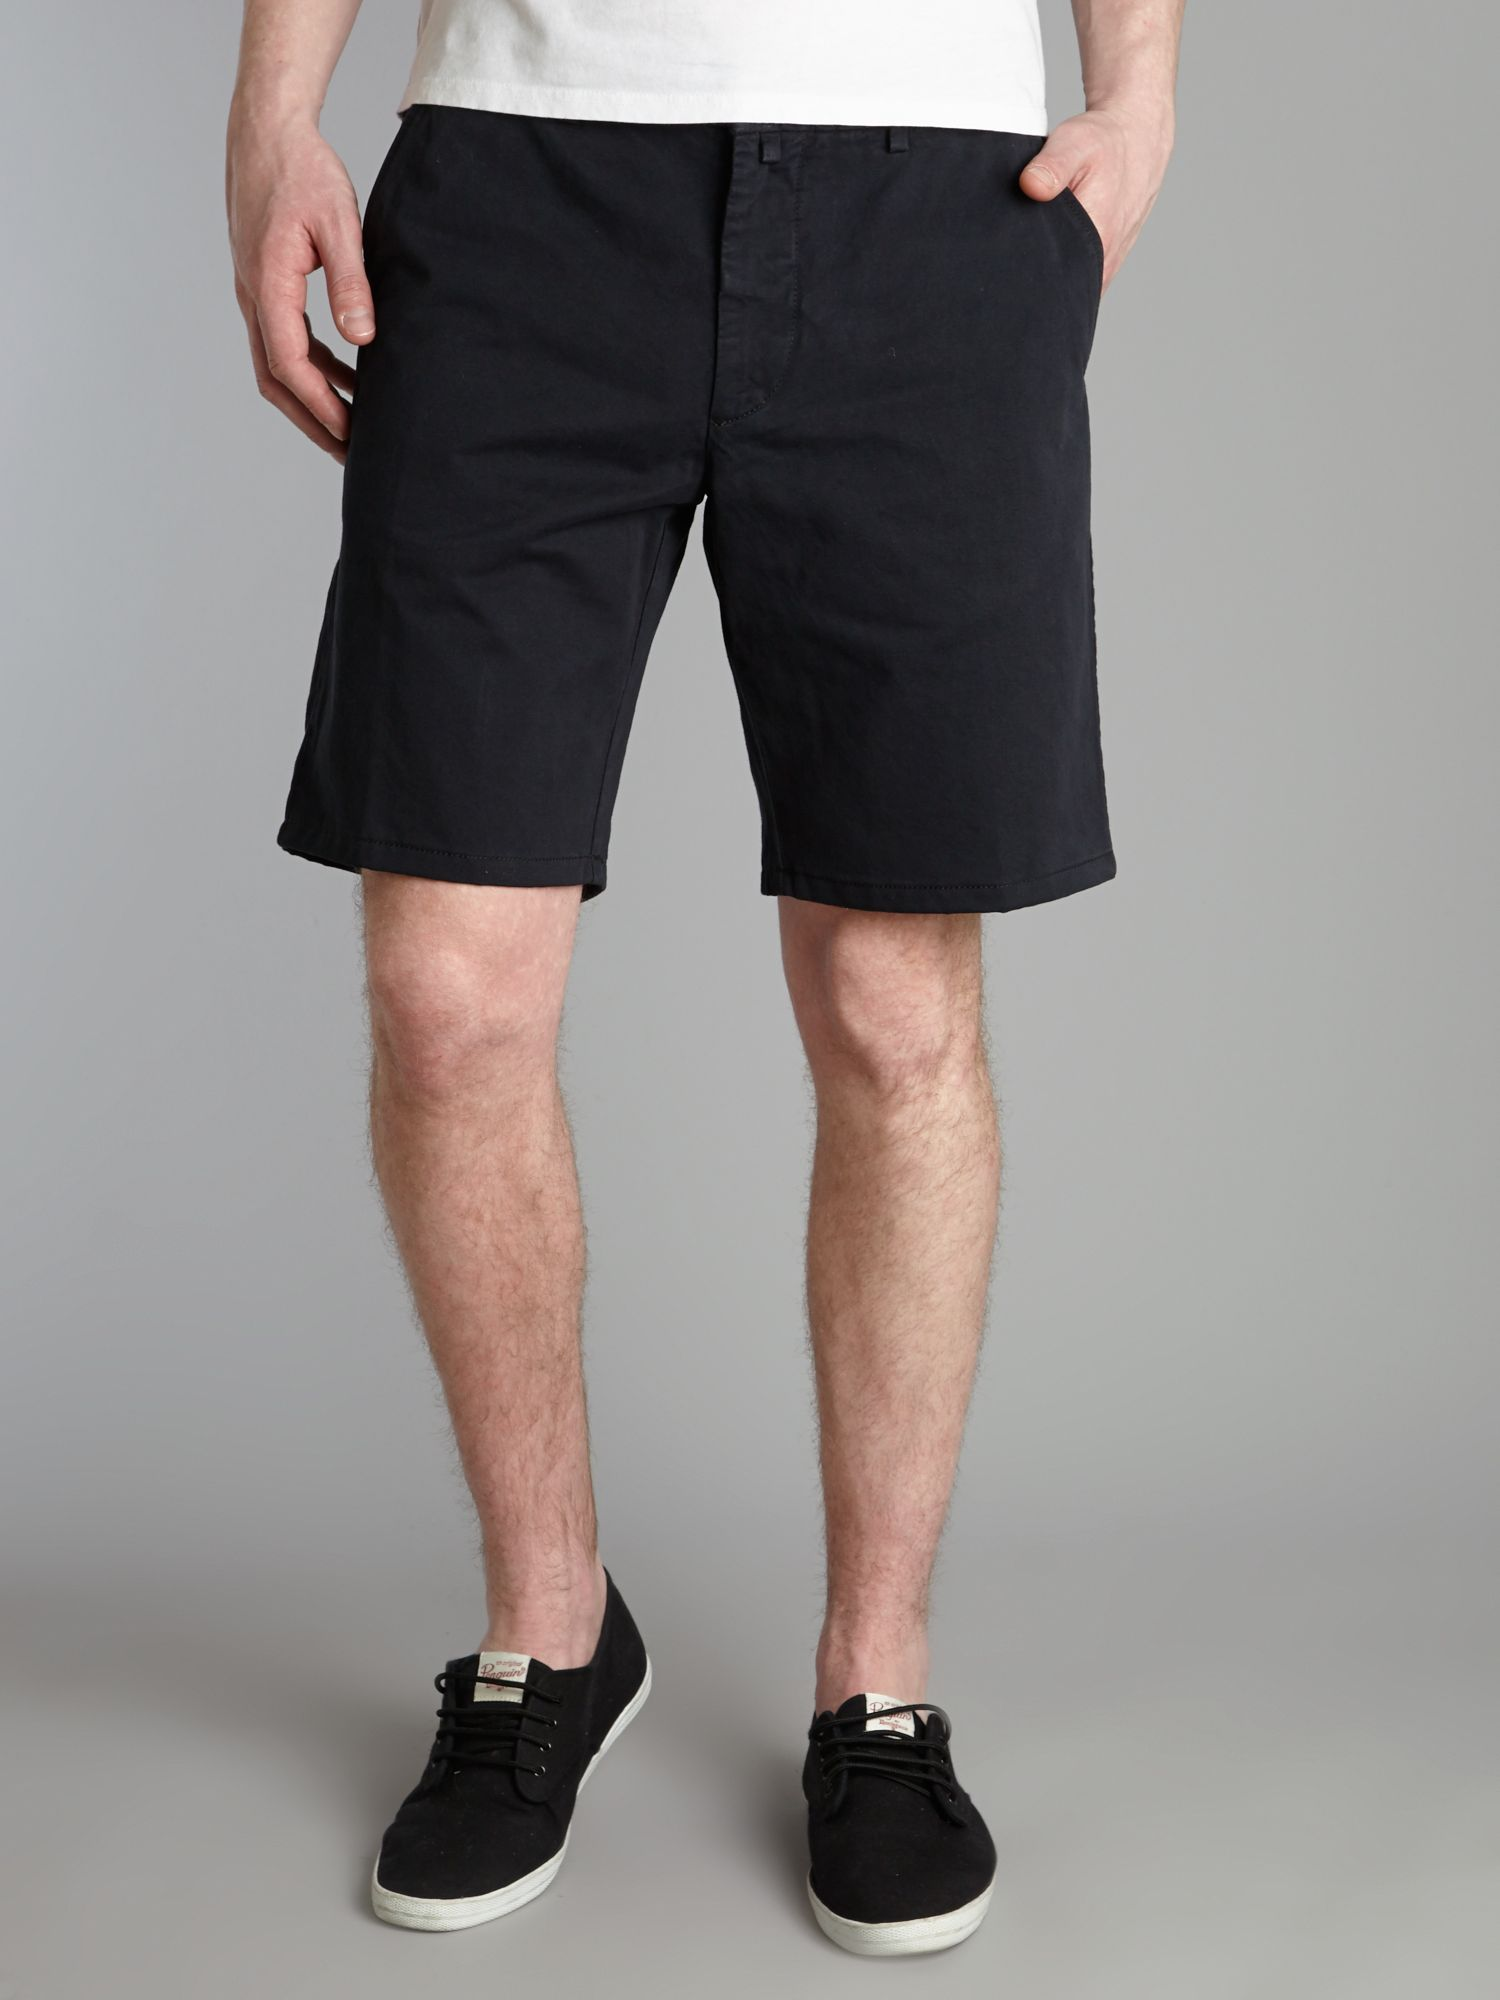 Preppy bermuda shorts